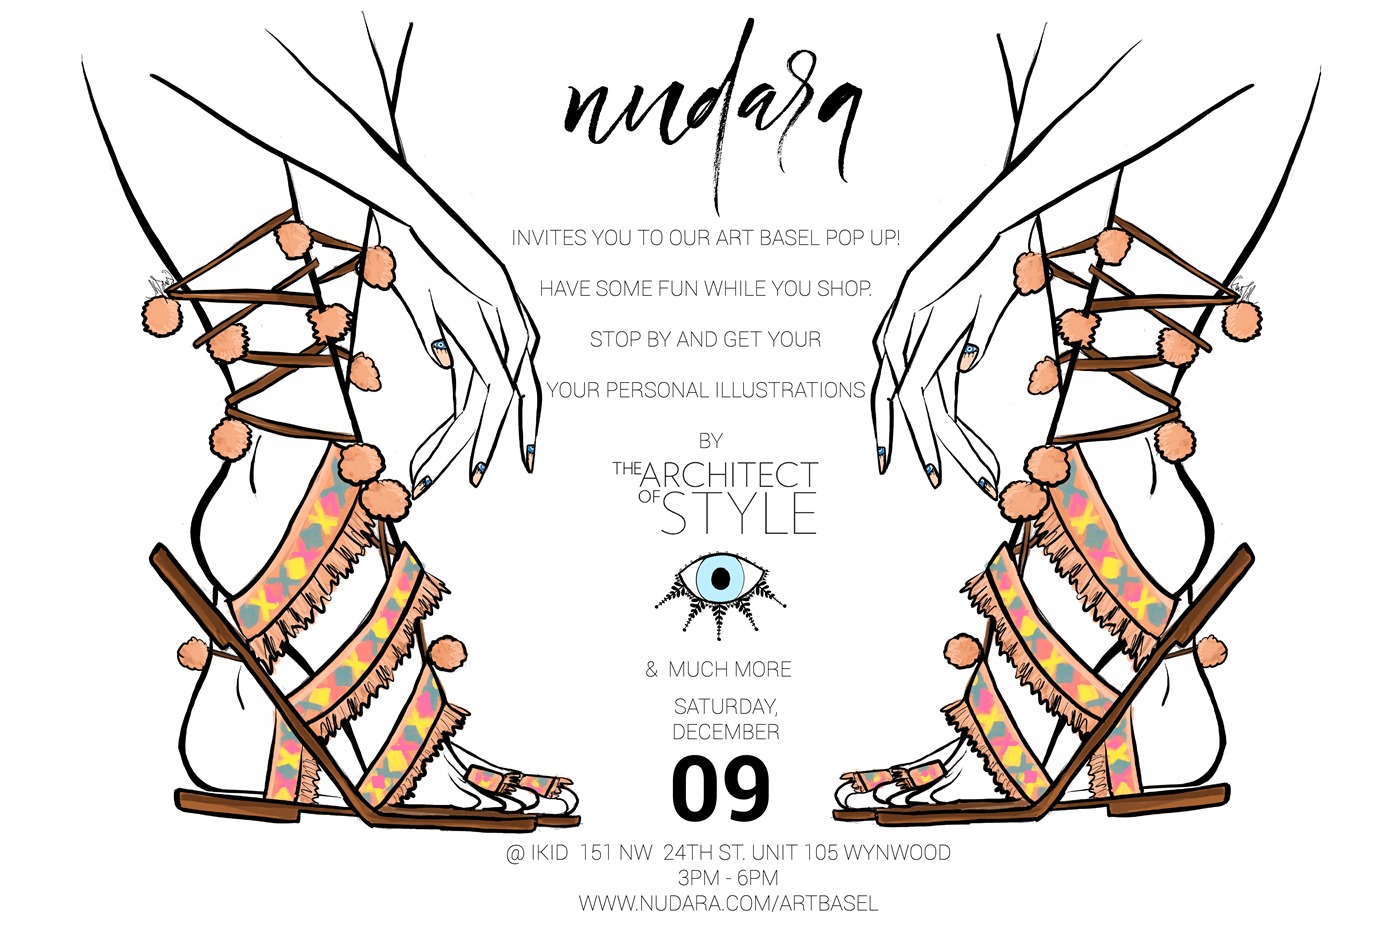 Nudara Art Basel The Architect of Style